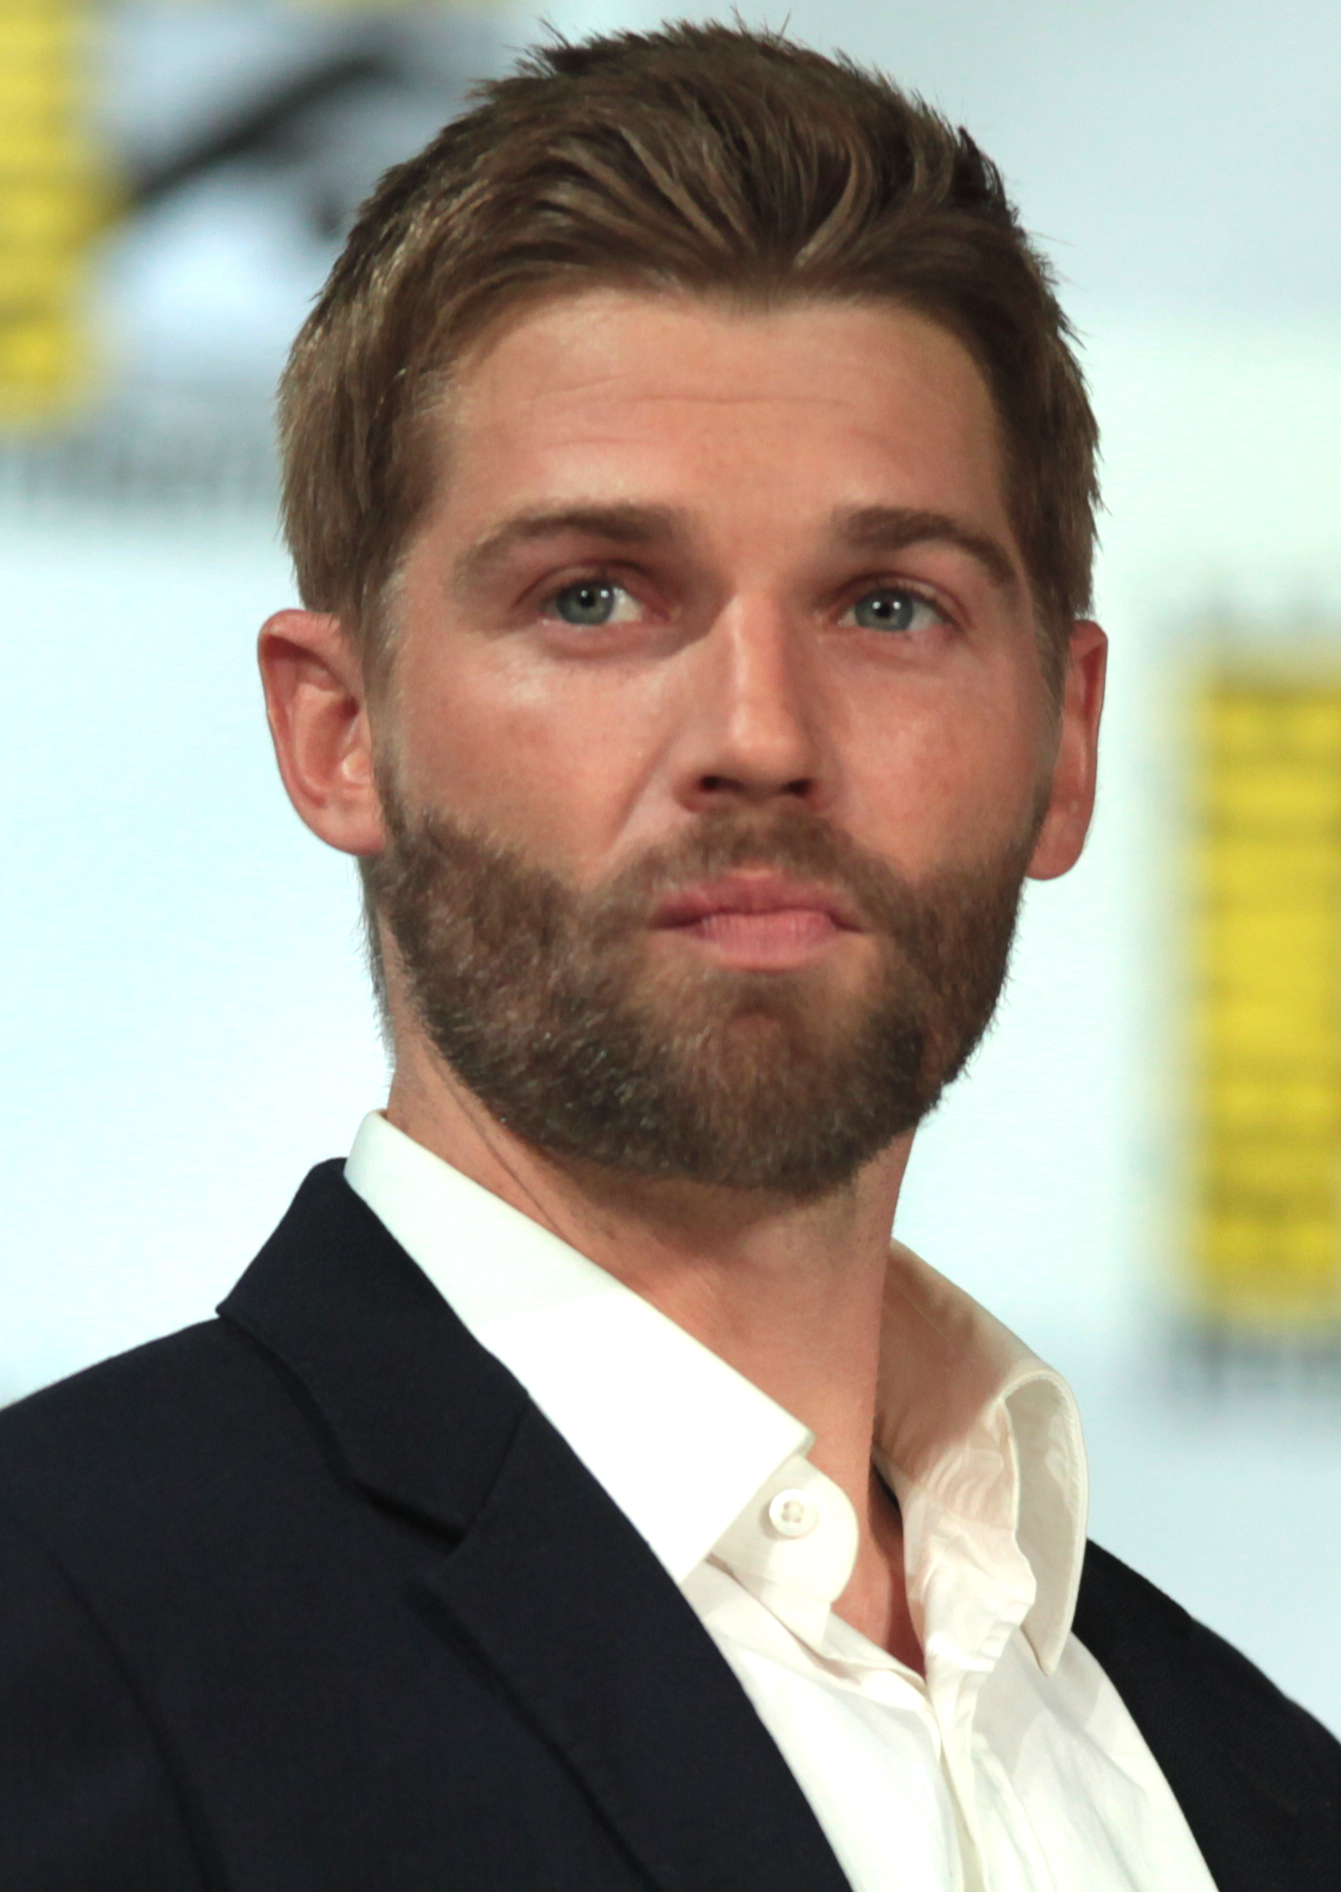 The 39-year old son of father (?) and mother(?) Mike Vogel in 2018 photo. Mike Vogel earned a  million dollar salary - leaving the net worth at 1 million in 2018